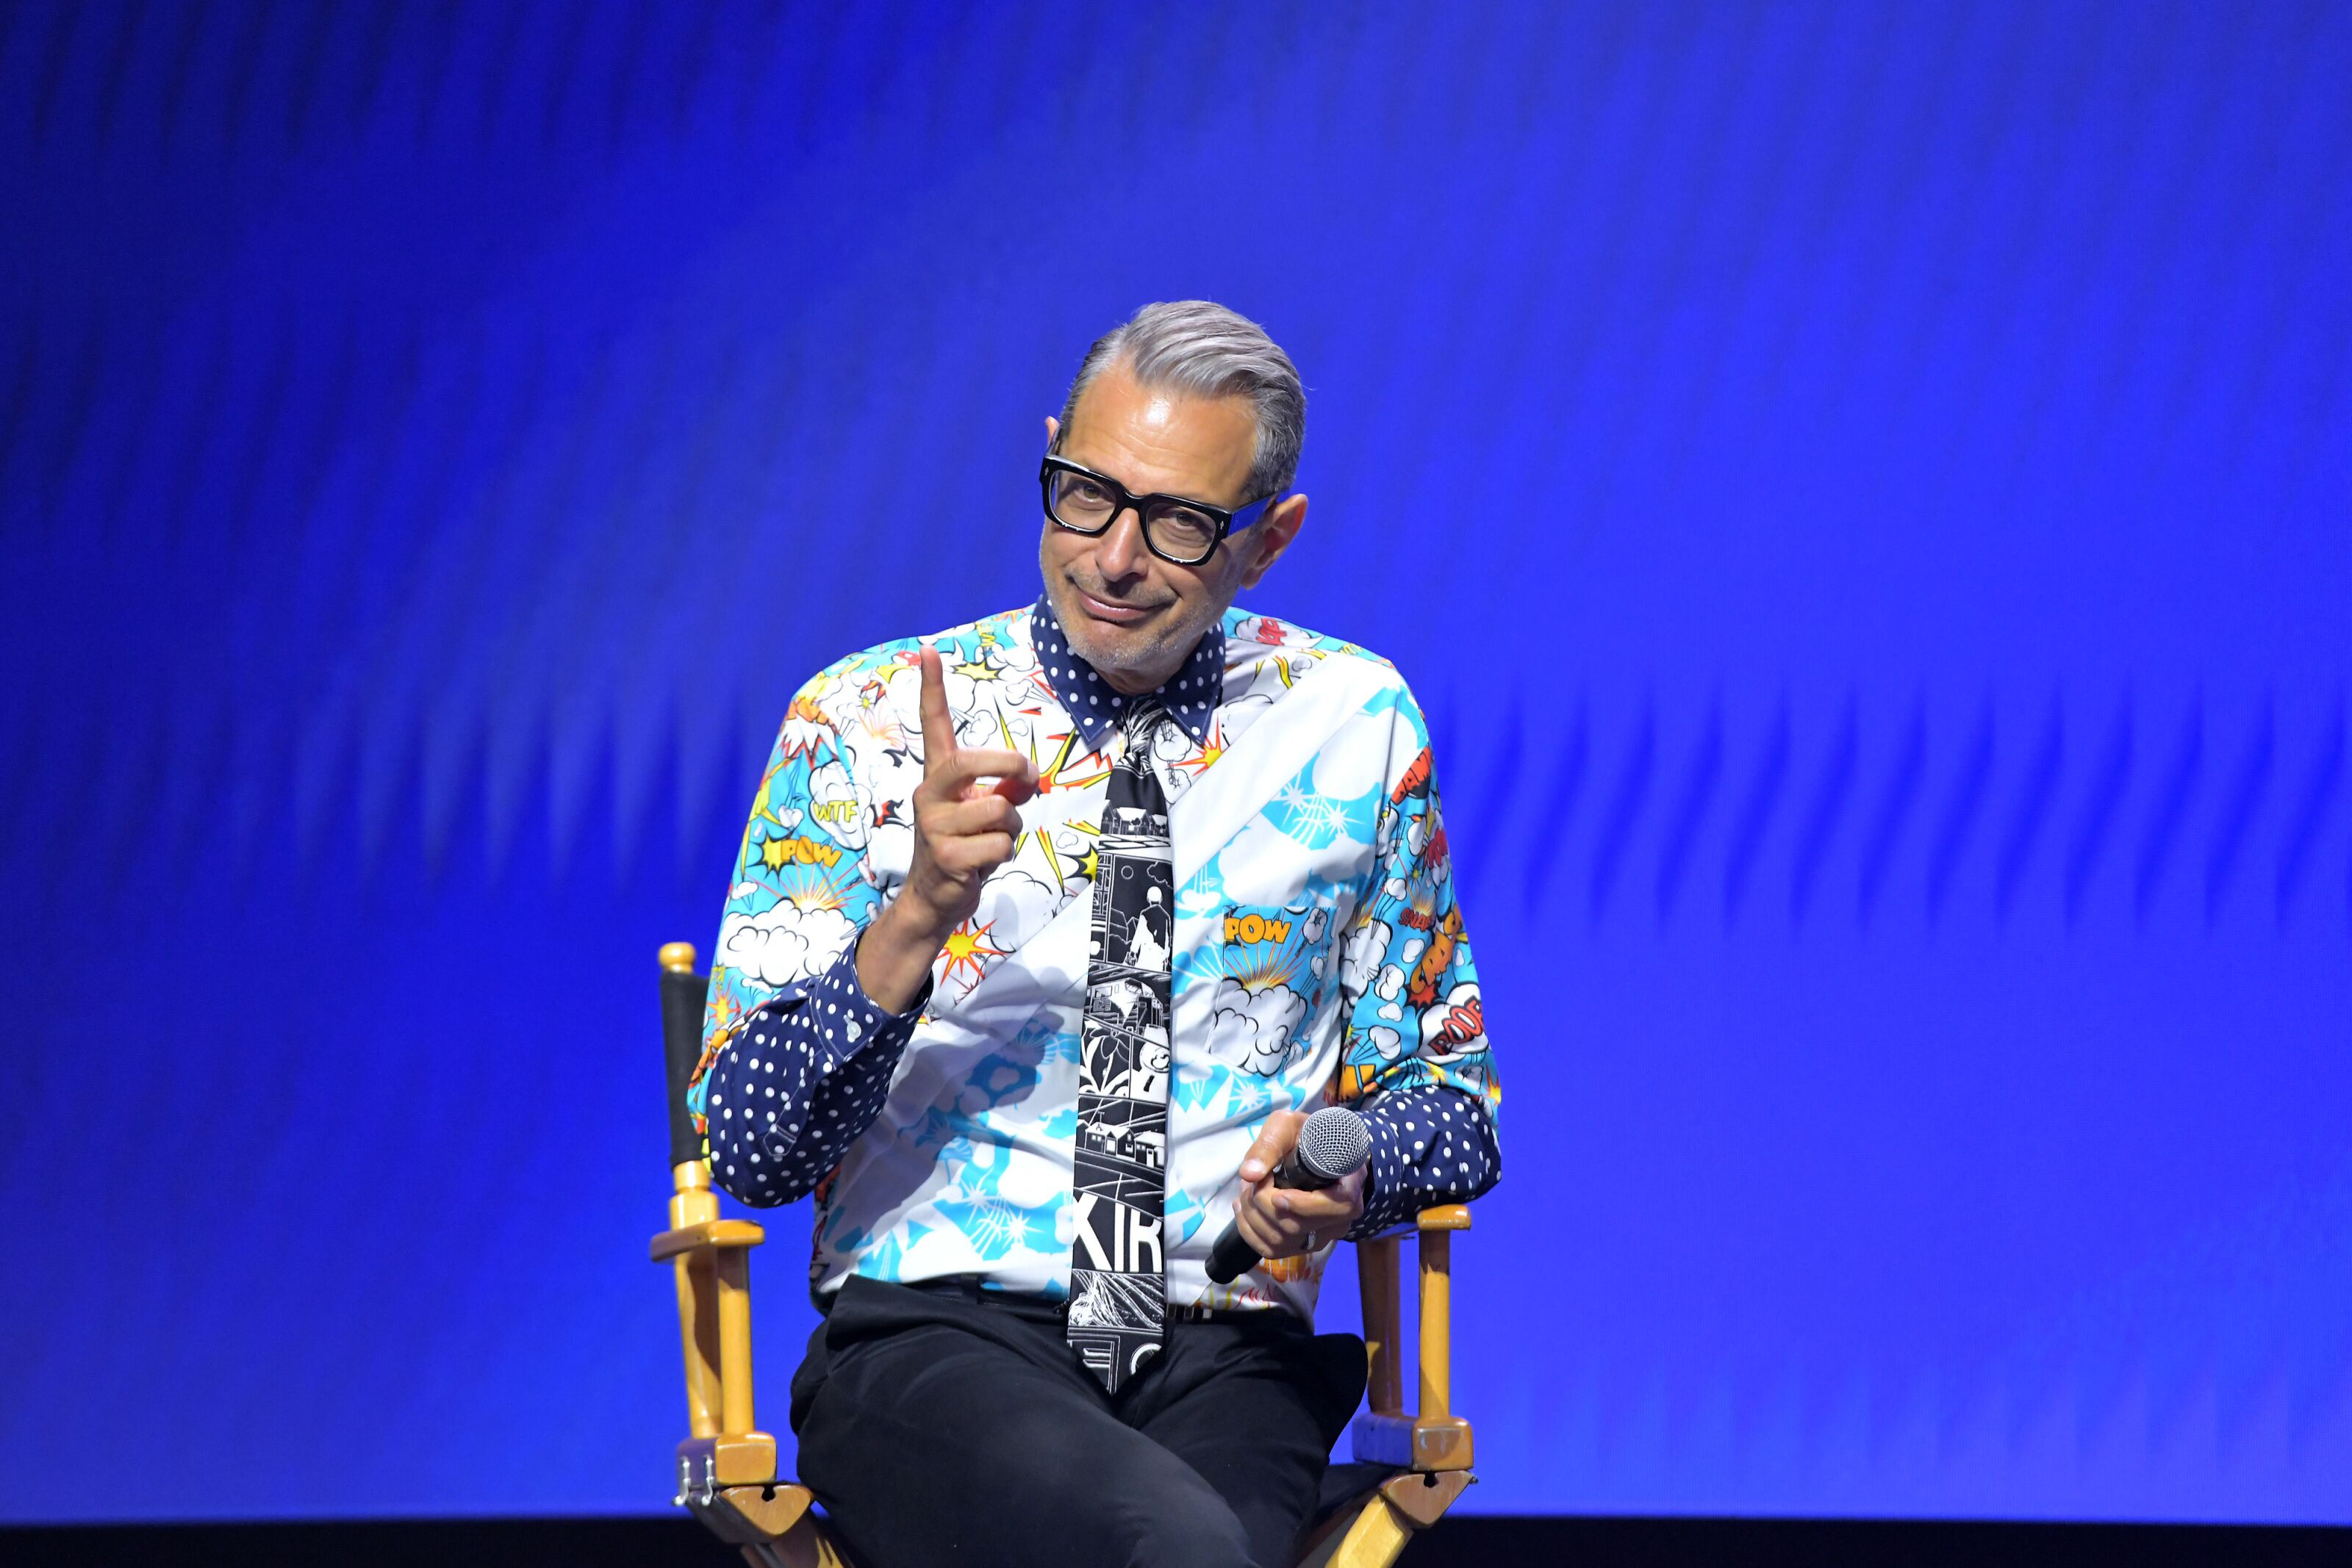 The World According to Jeff Goldblum drops an insane trailer at D23